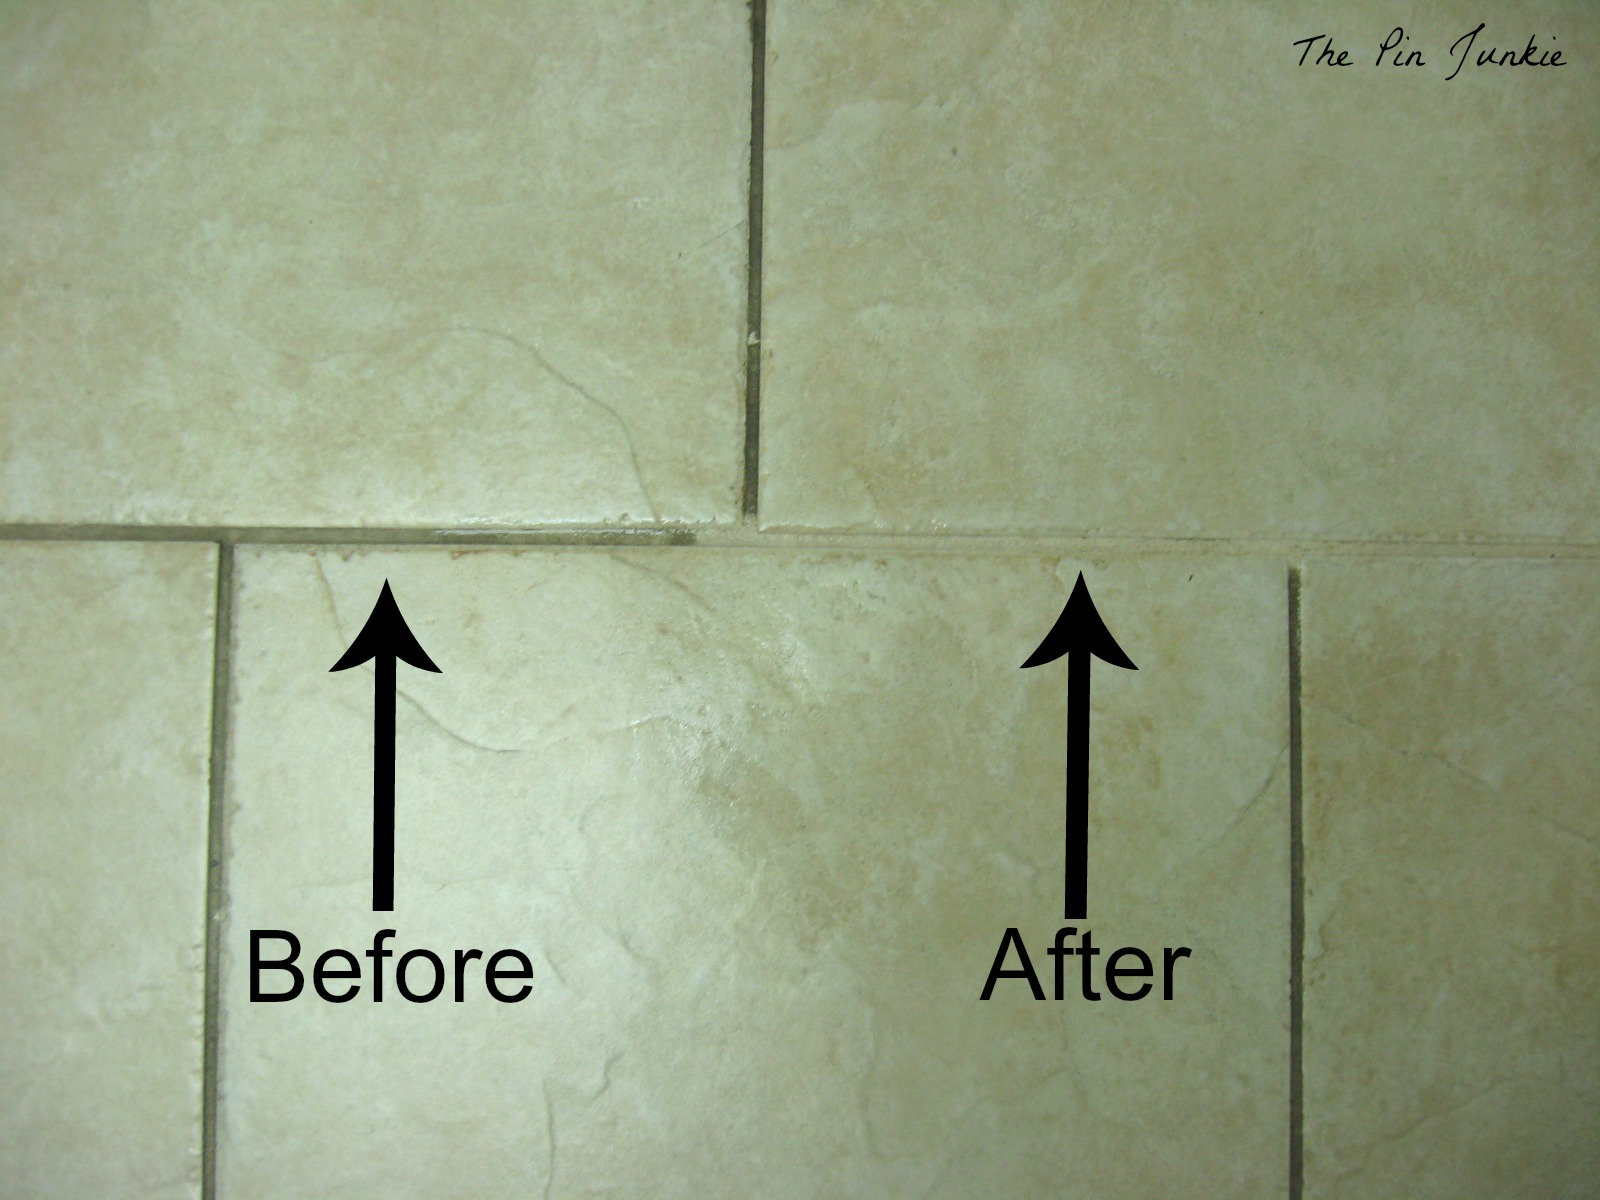 the pin junkie: how to clean tile grout